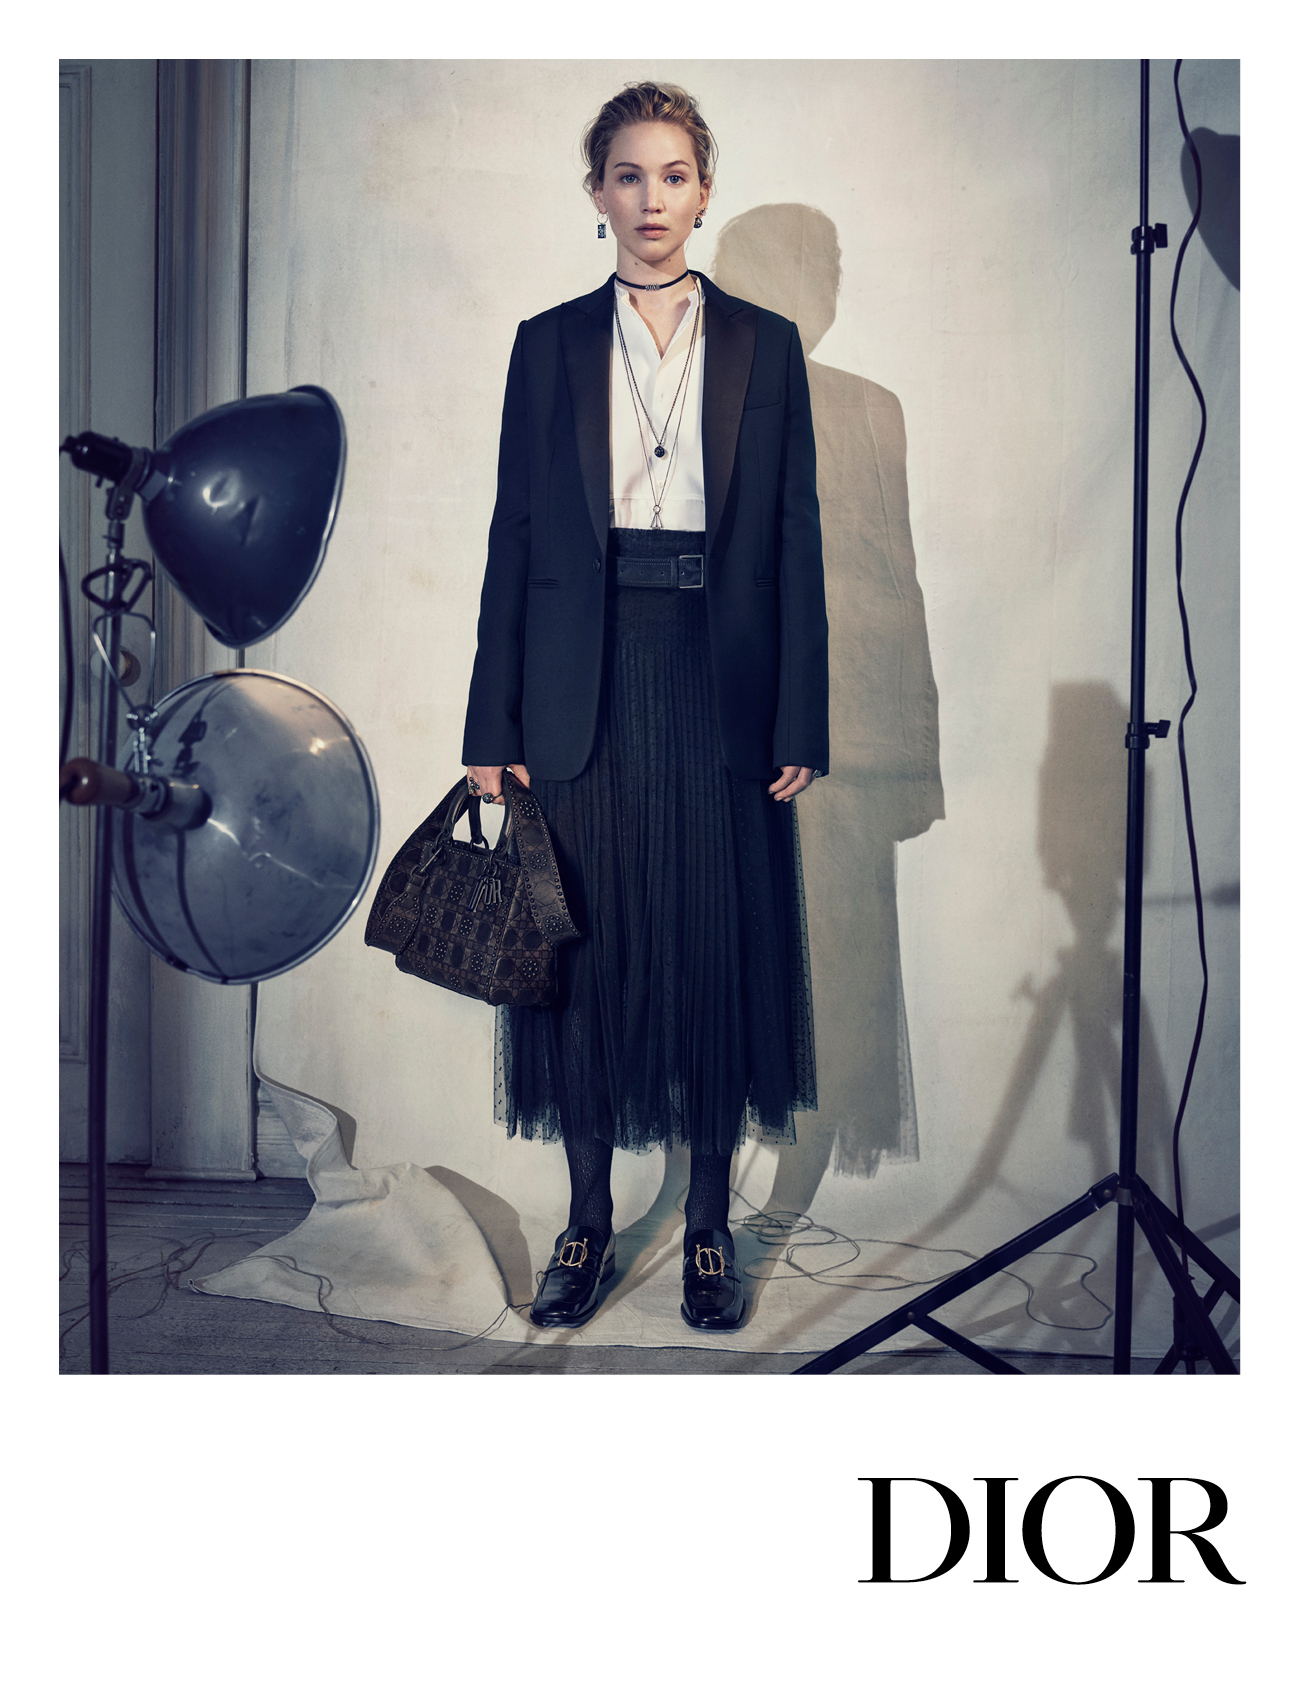 180509_Dior JL_PF18_Layouts_Shot08_SP.jpg